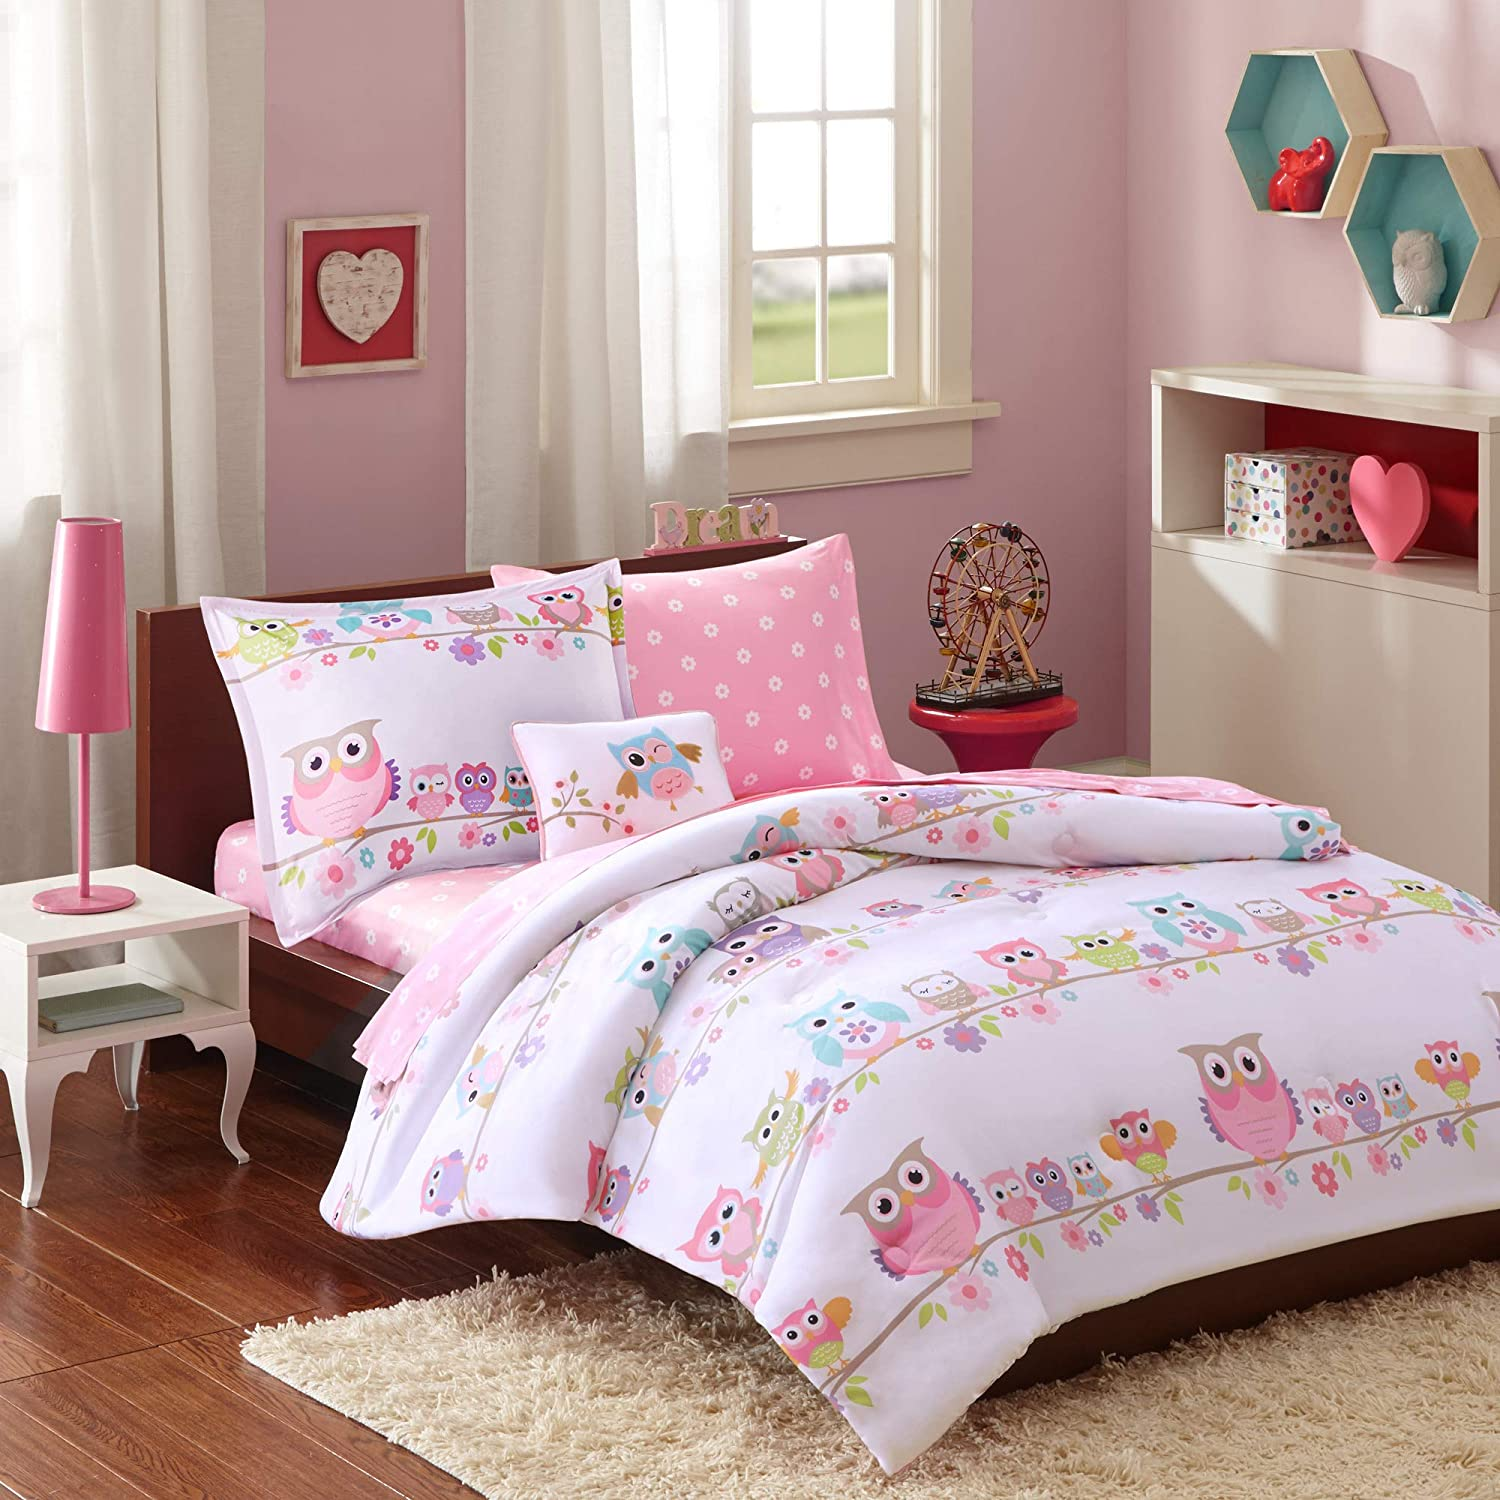 Mi-Zone Kids Wise Wendy Queen Comforter Sets for Girls - Pink, Owl – 8 Pieces Kids Girl Bedding Set – Ultra Soft Microfiber Childrens Bedroom Bed Comforters